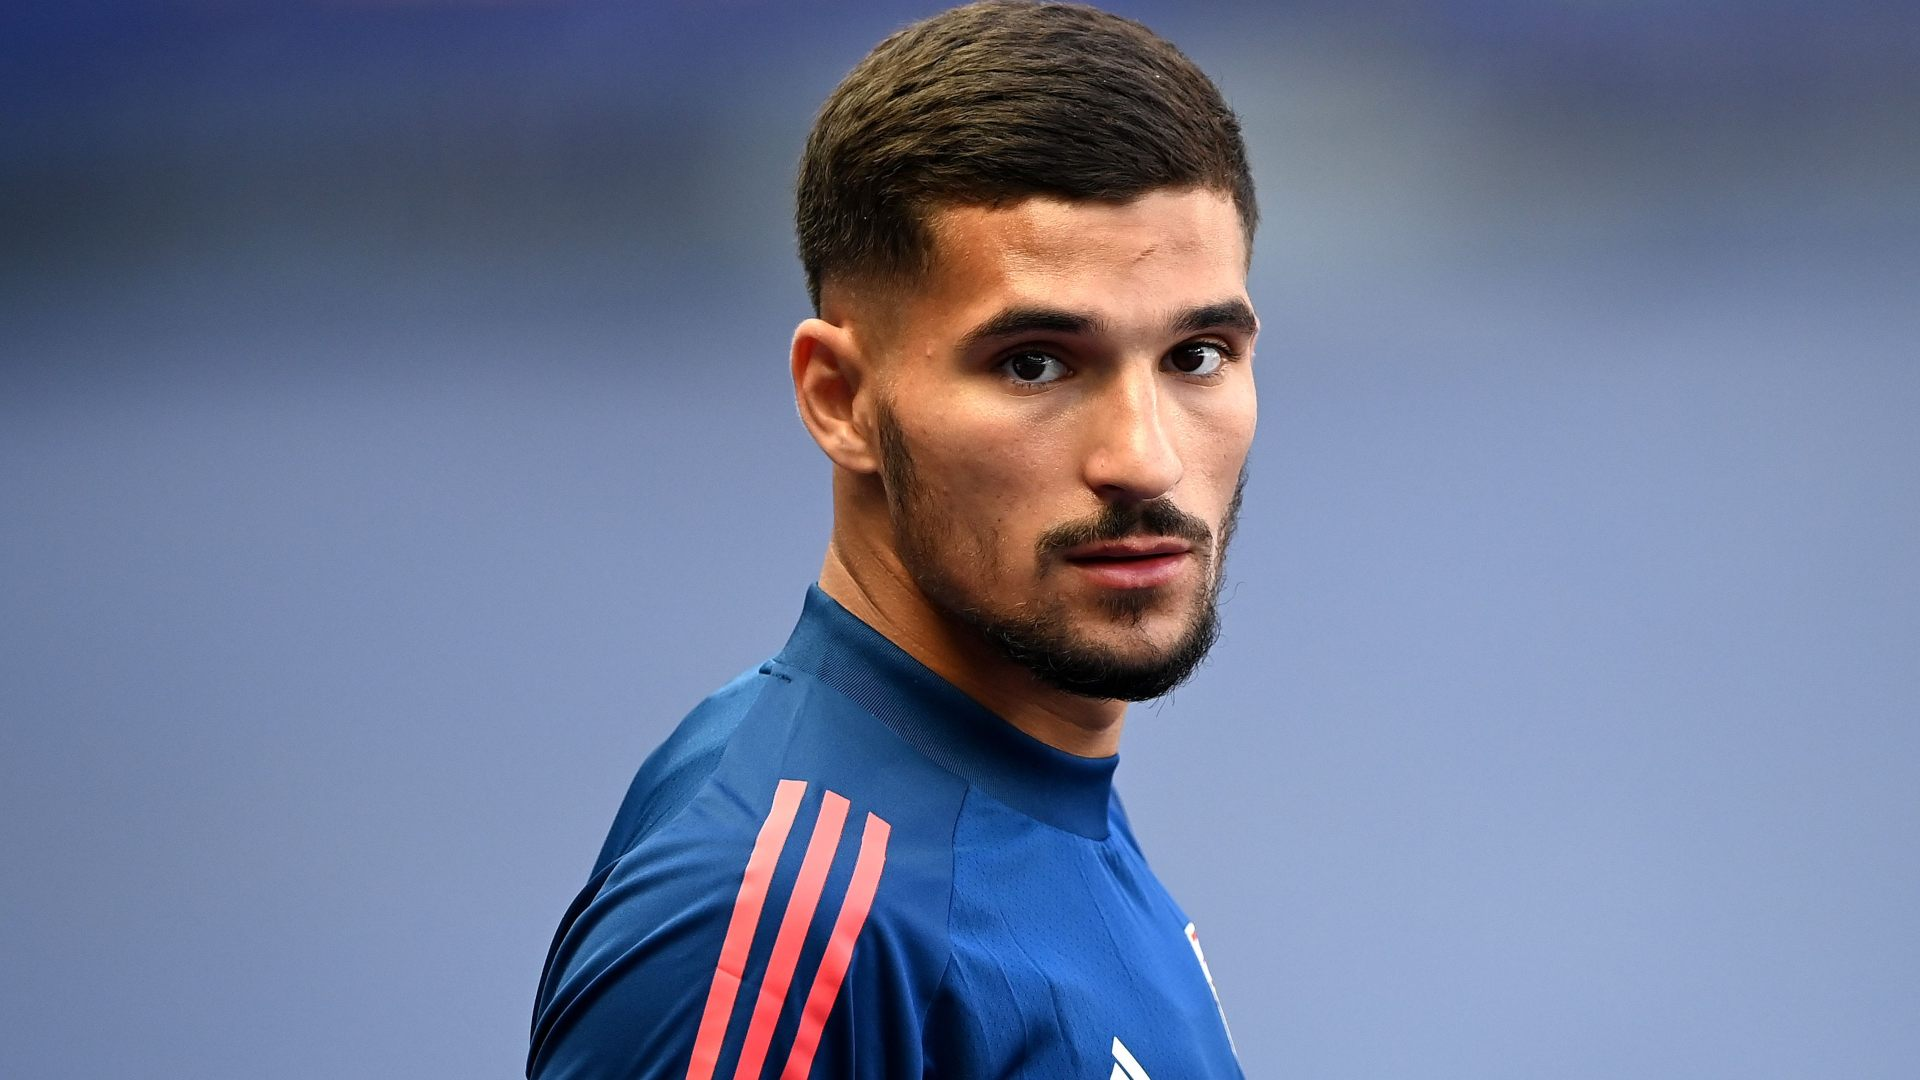 Lyon star Aouar tests positive for Covid-19 ahead of Ligue 1 season opener